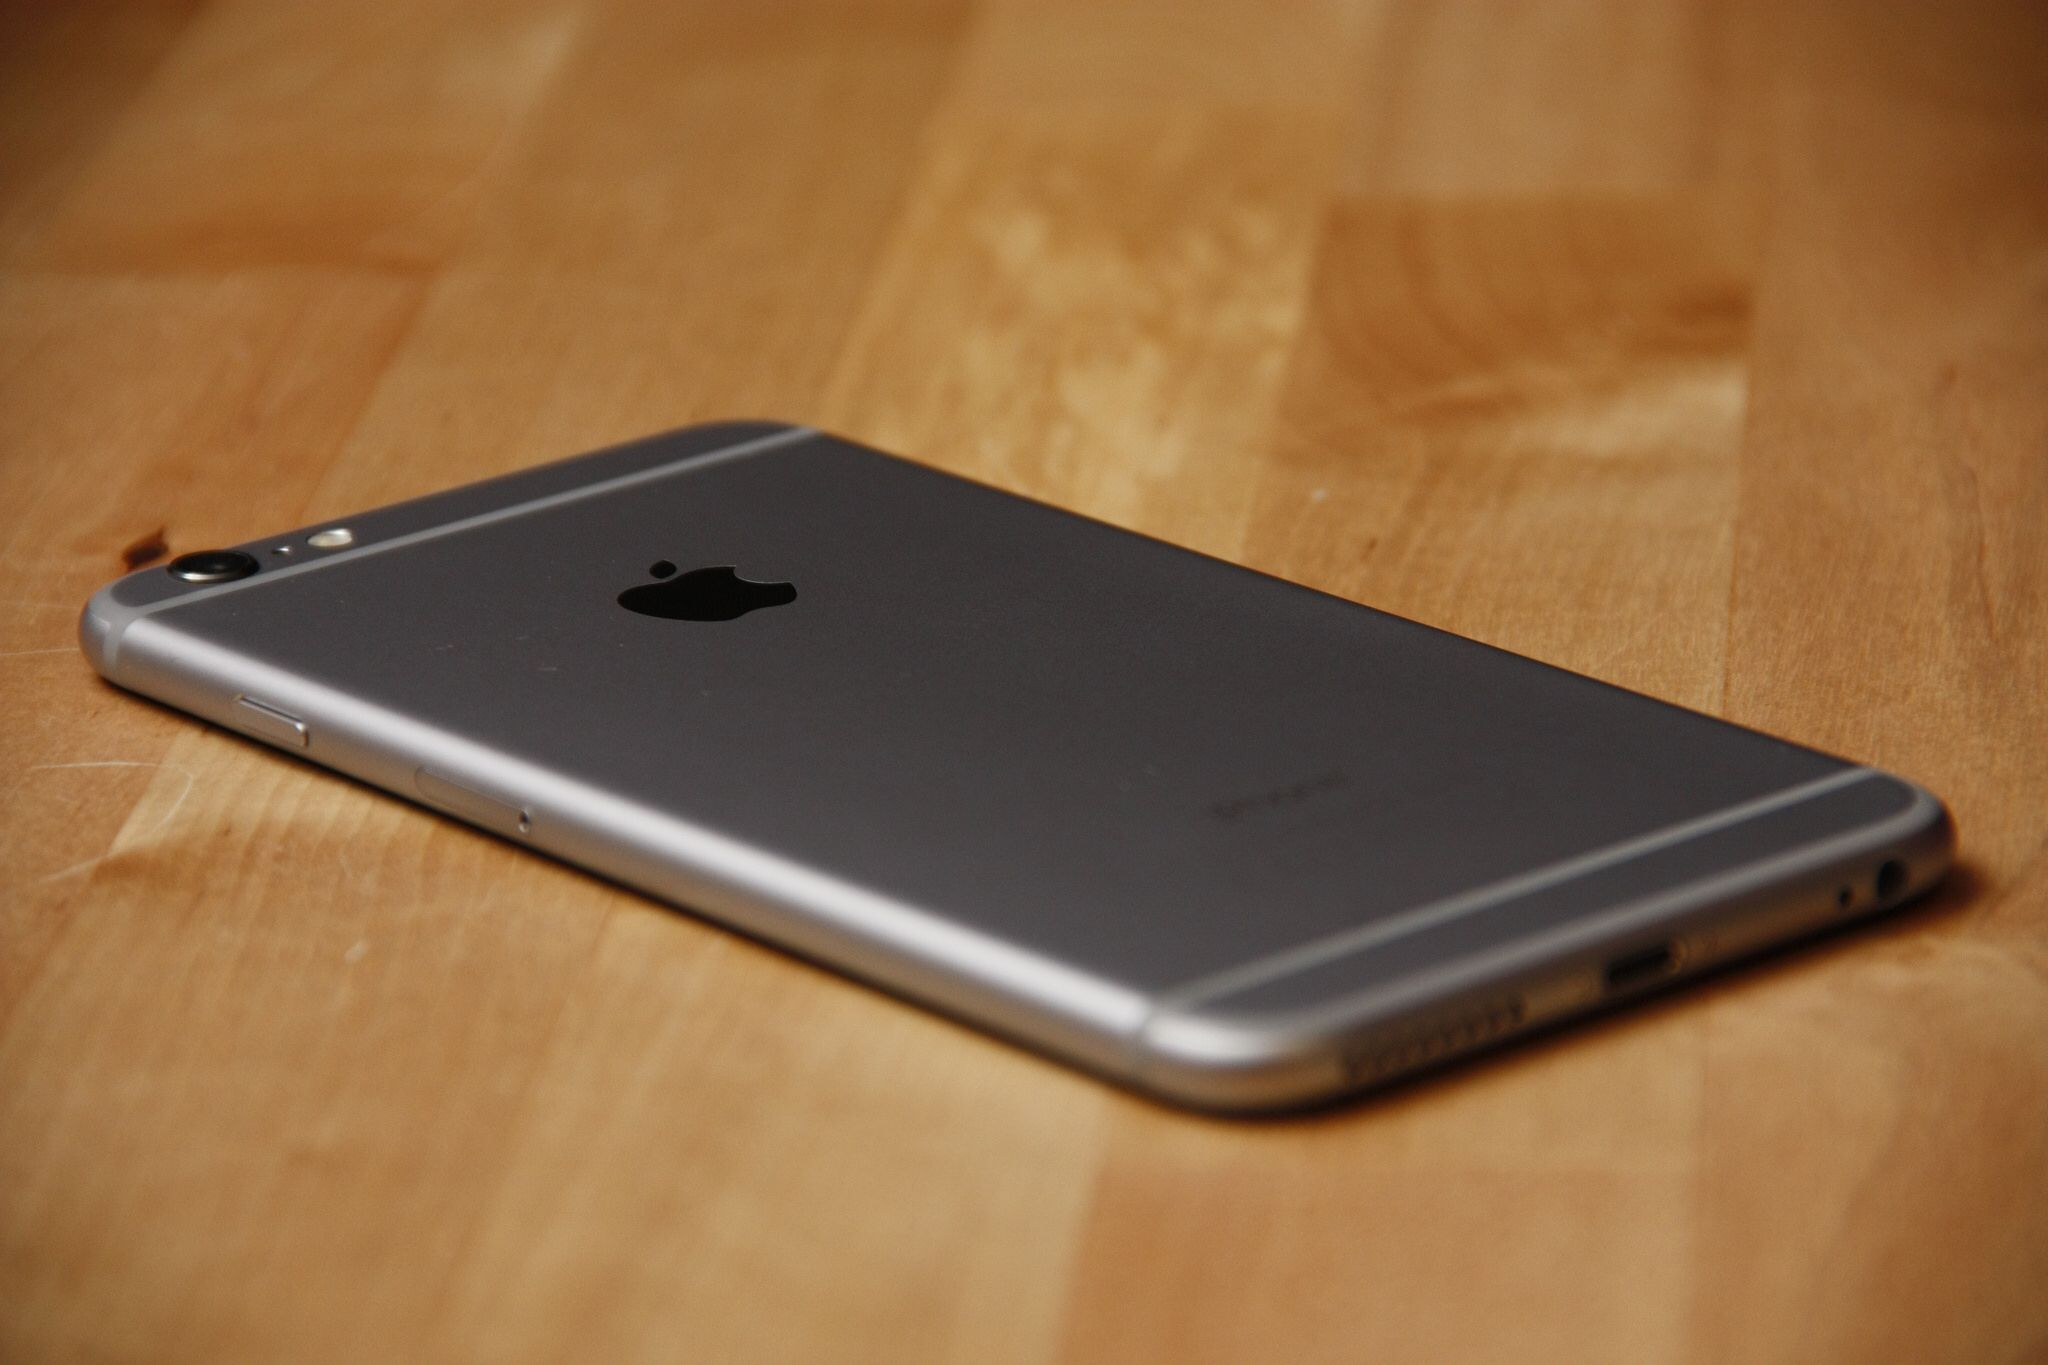 apple iphone 6 space grey. iphone 6 plus space grey apple iphone t